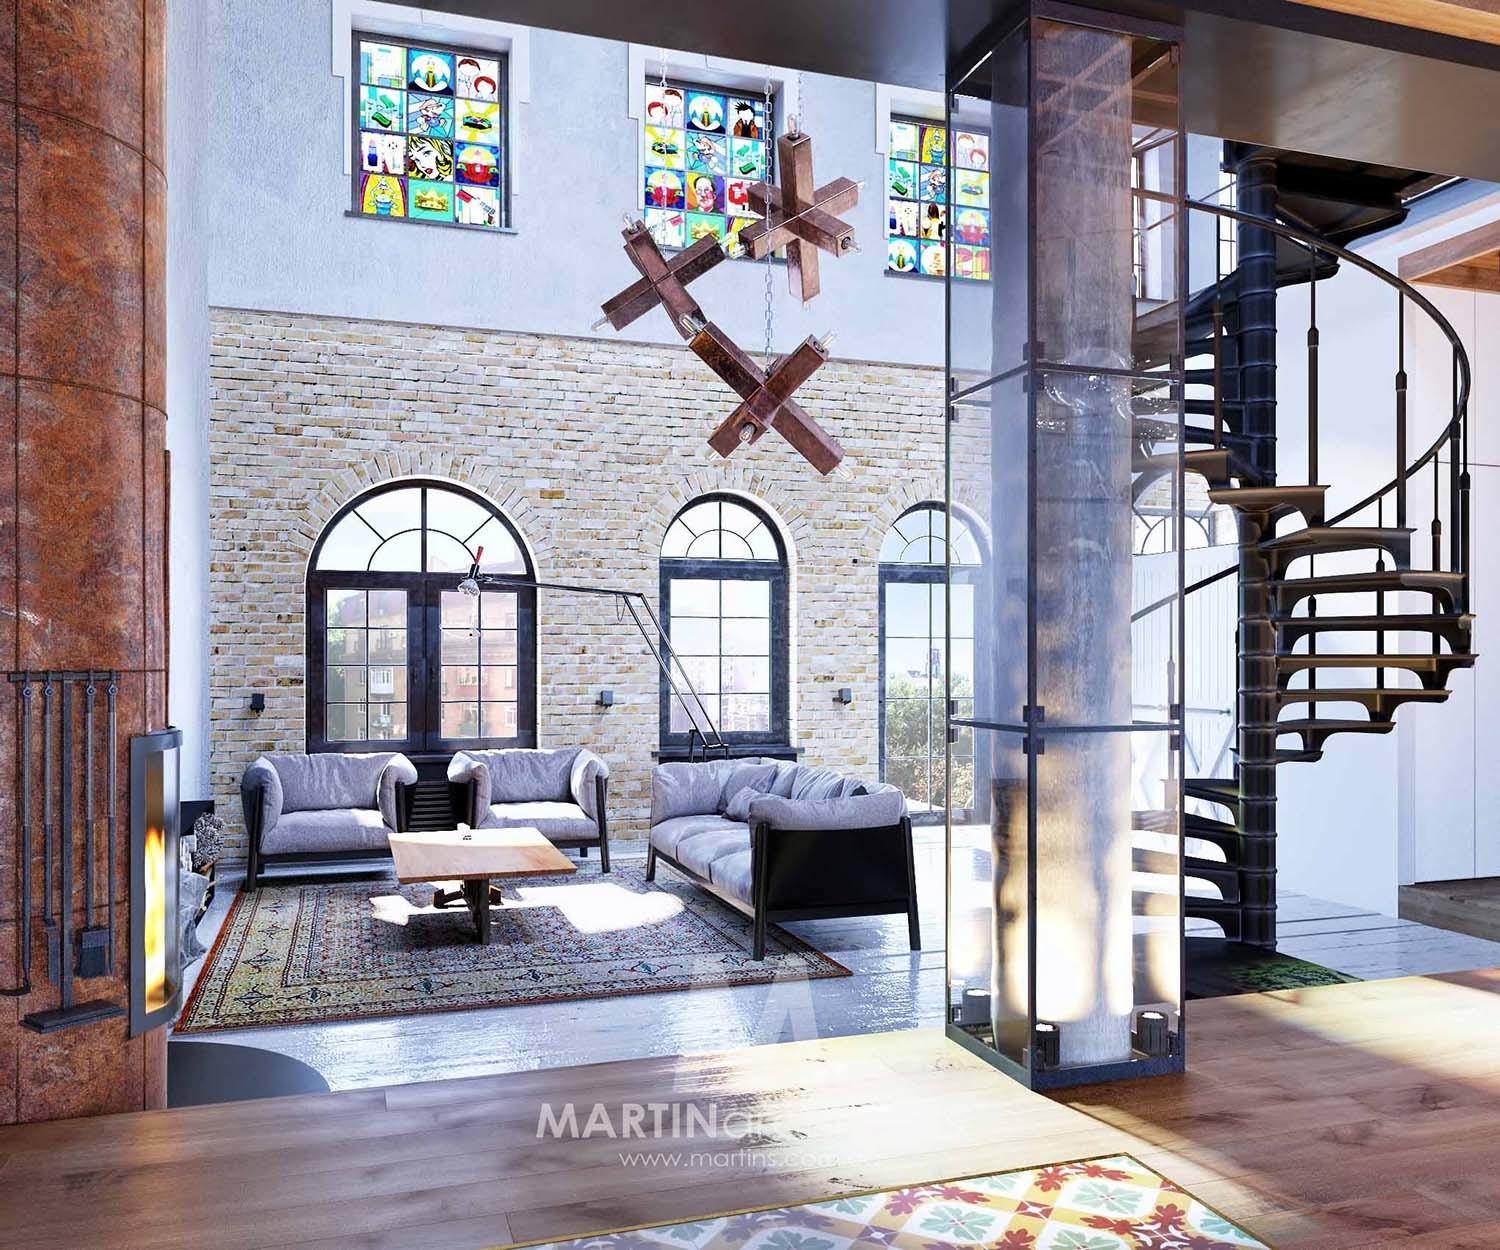 Industrial Style Loft Kiev Artfully Blends Drama Light